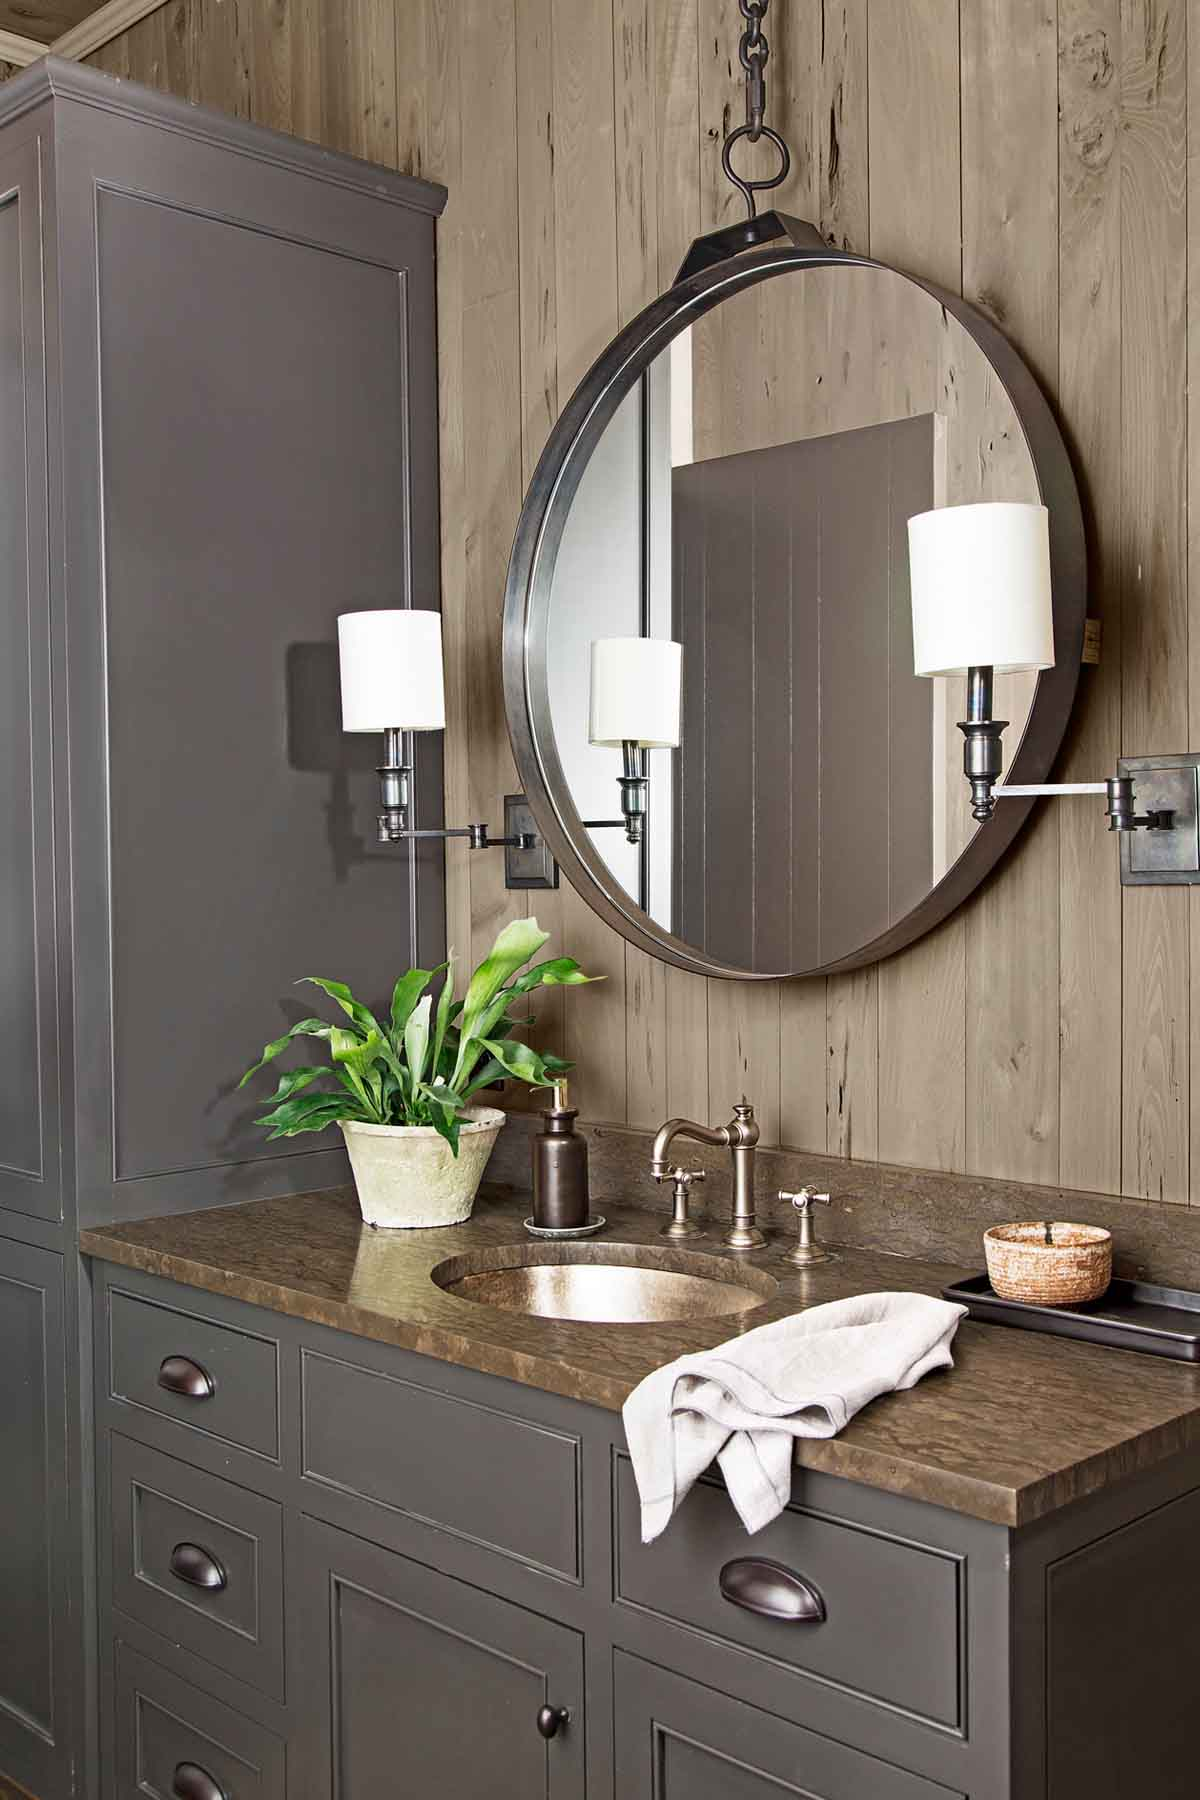 Rustic bathrooms designs - Rustic Bathrooms Designs 8